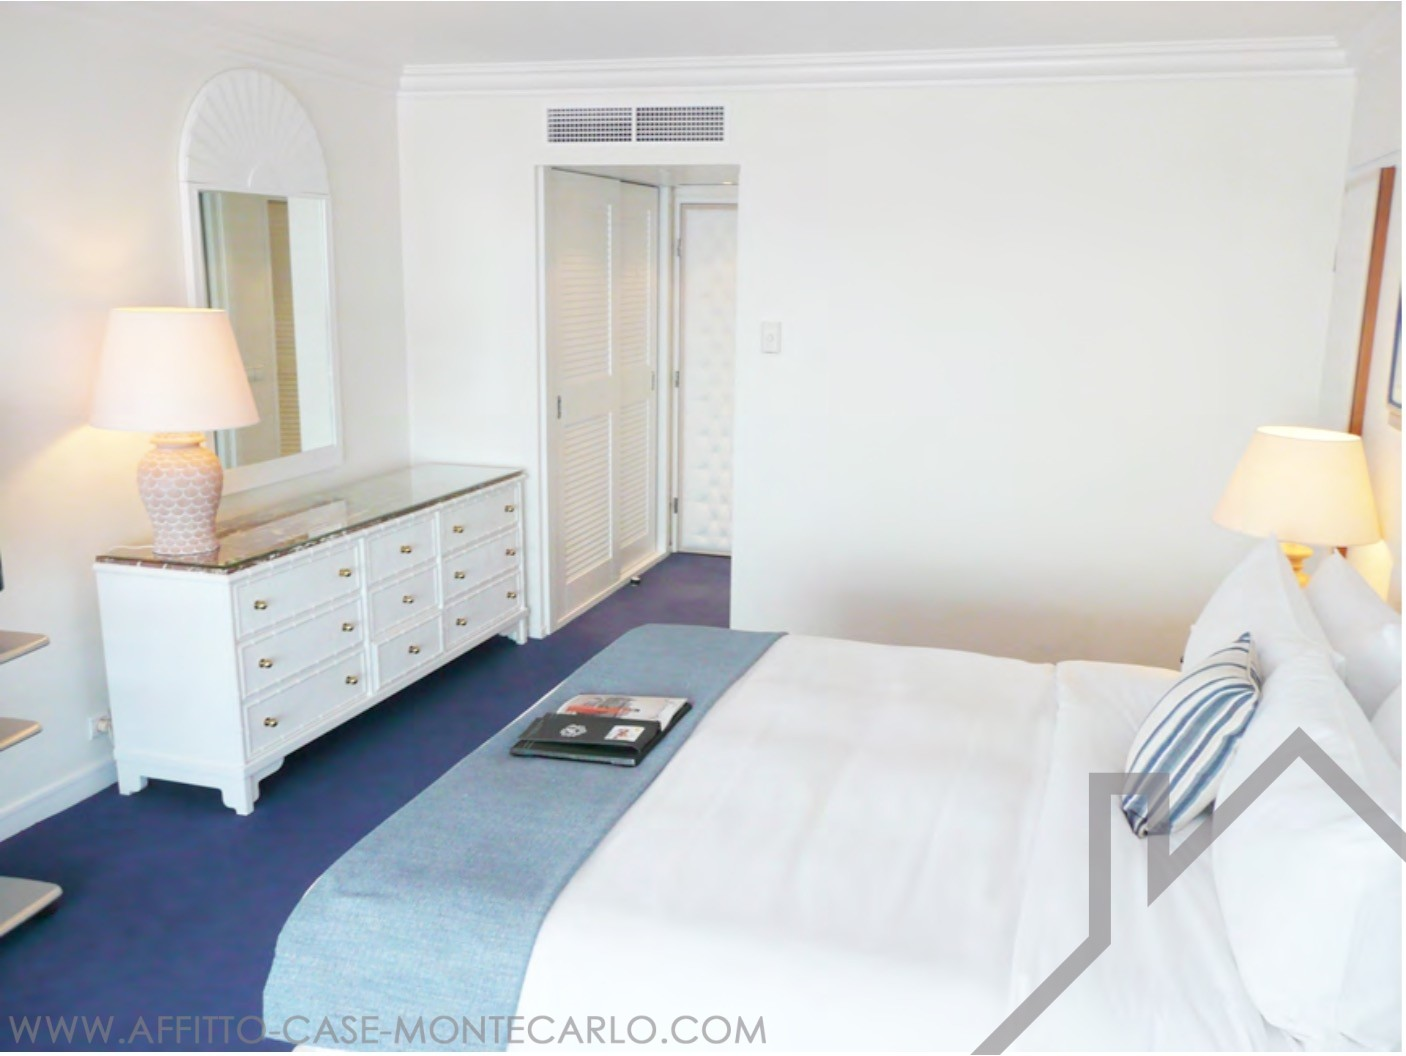 Furnished One Bedroom Apartment In The Fairmont Appartamenti Da Affittare A Montecarlo